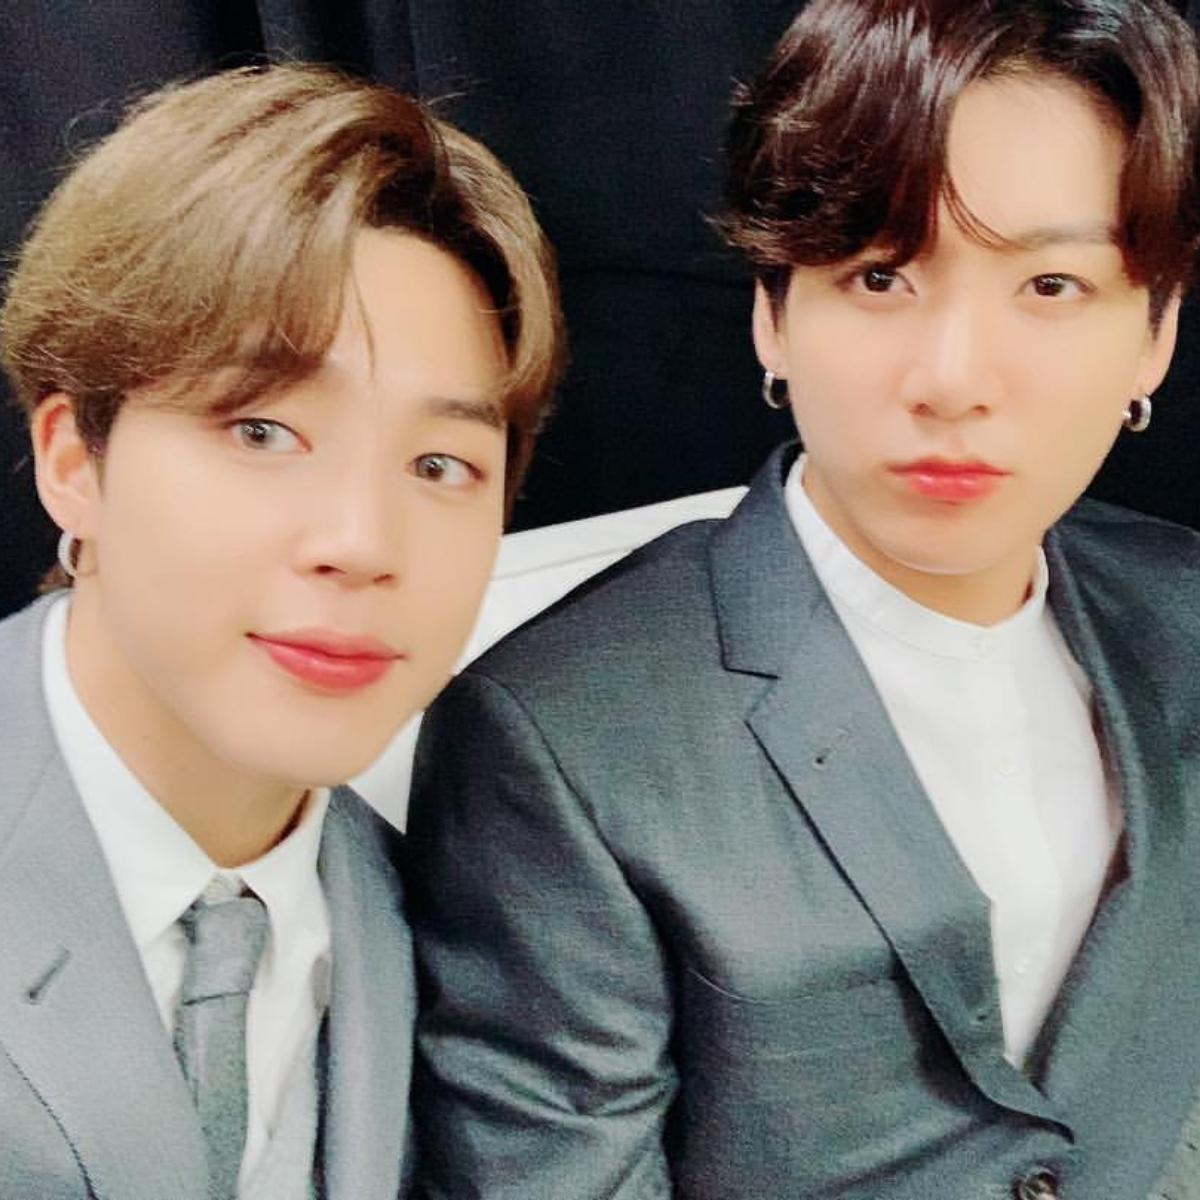 Bts 10 Photos Of Jimin And Jungkook Aka Jikook Prove Their Friendship Is One Of A Kind